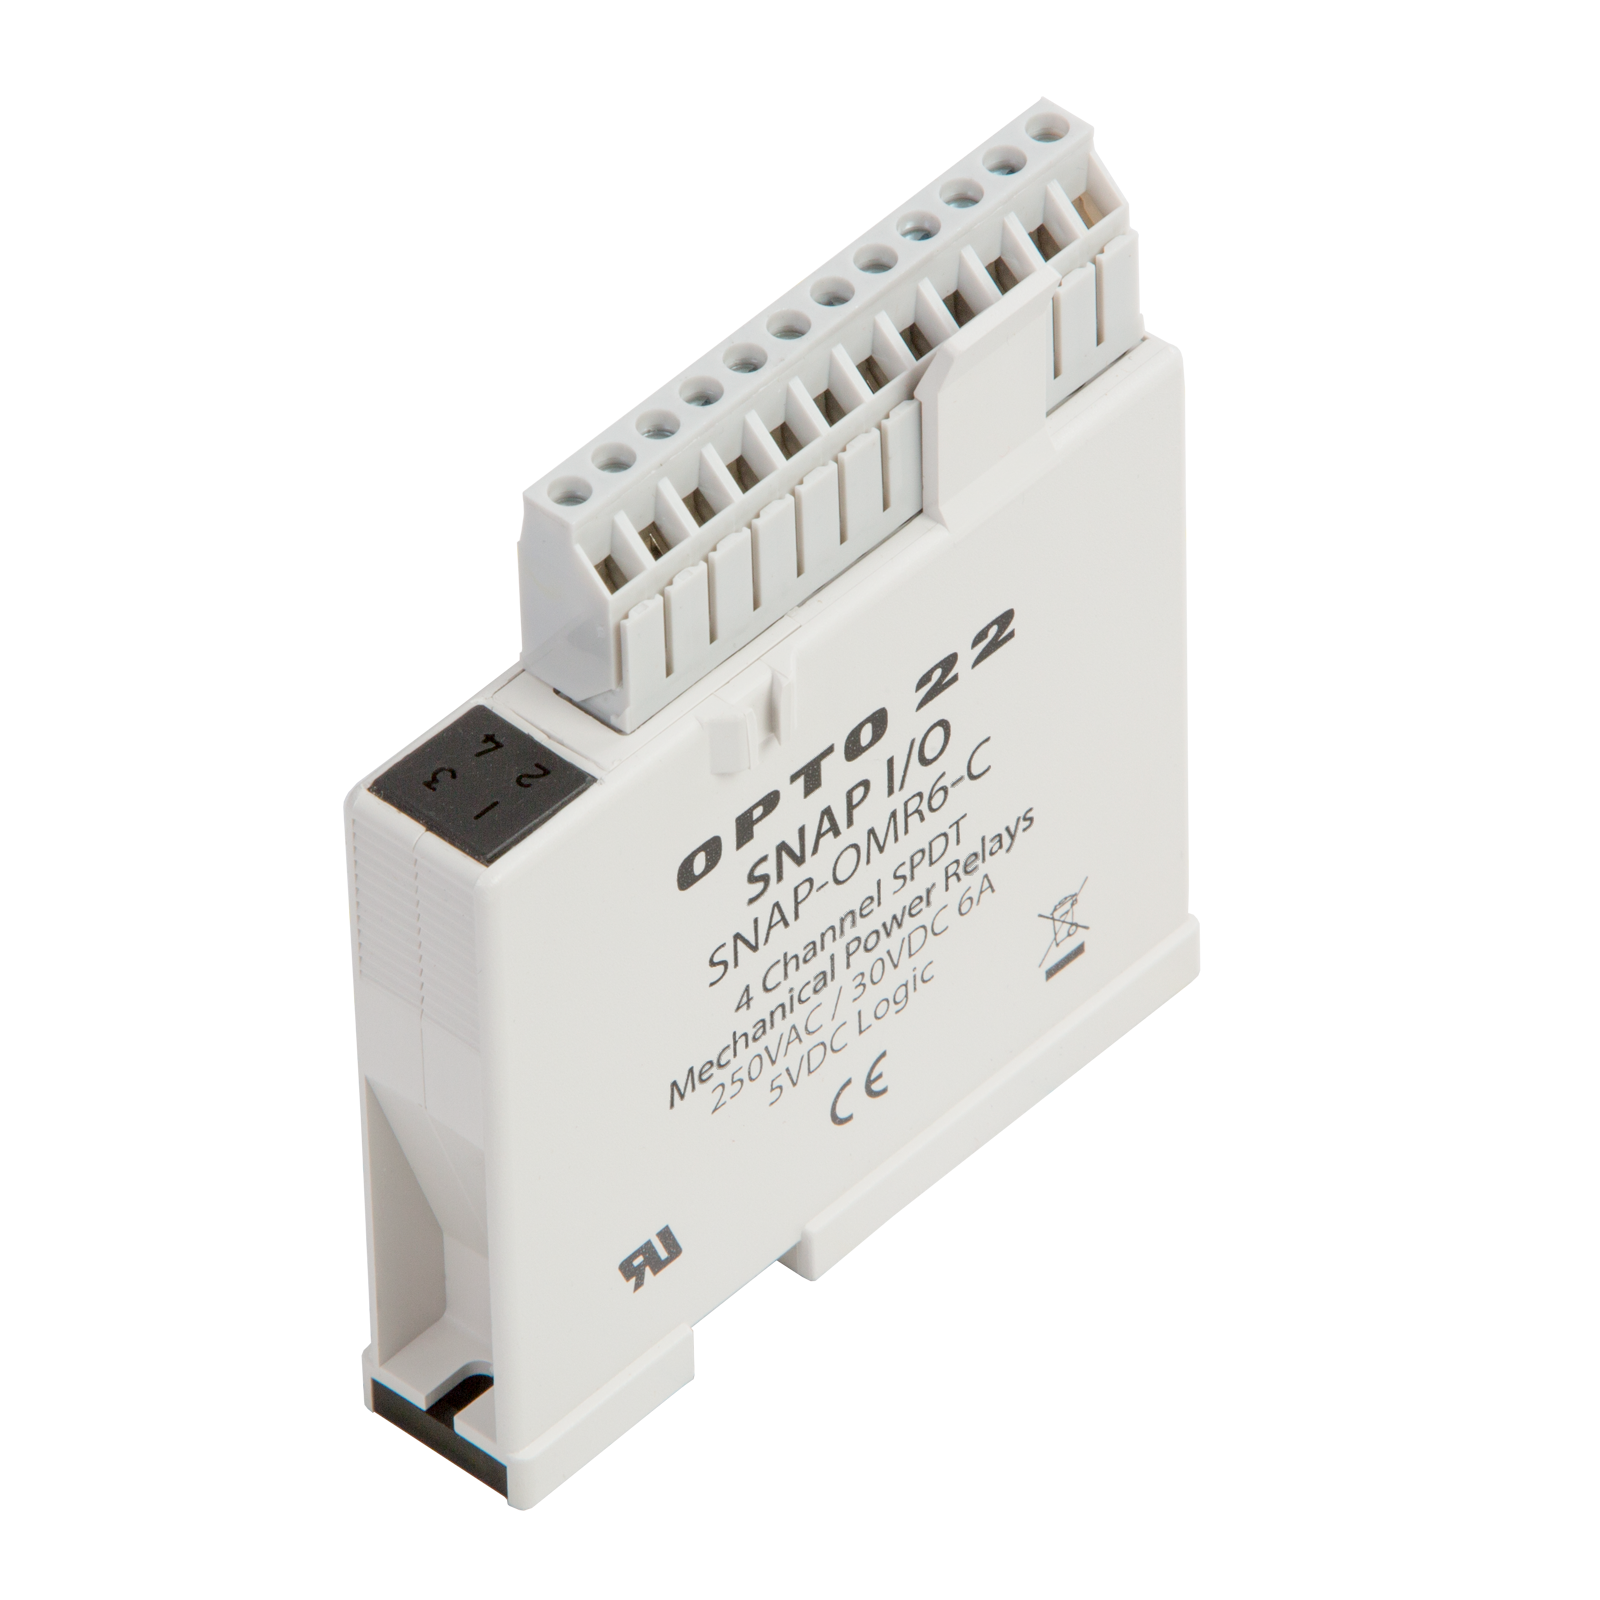 opto22 snap omr6 c snap isolated 4 channel mechanical power rh opto22 com